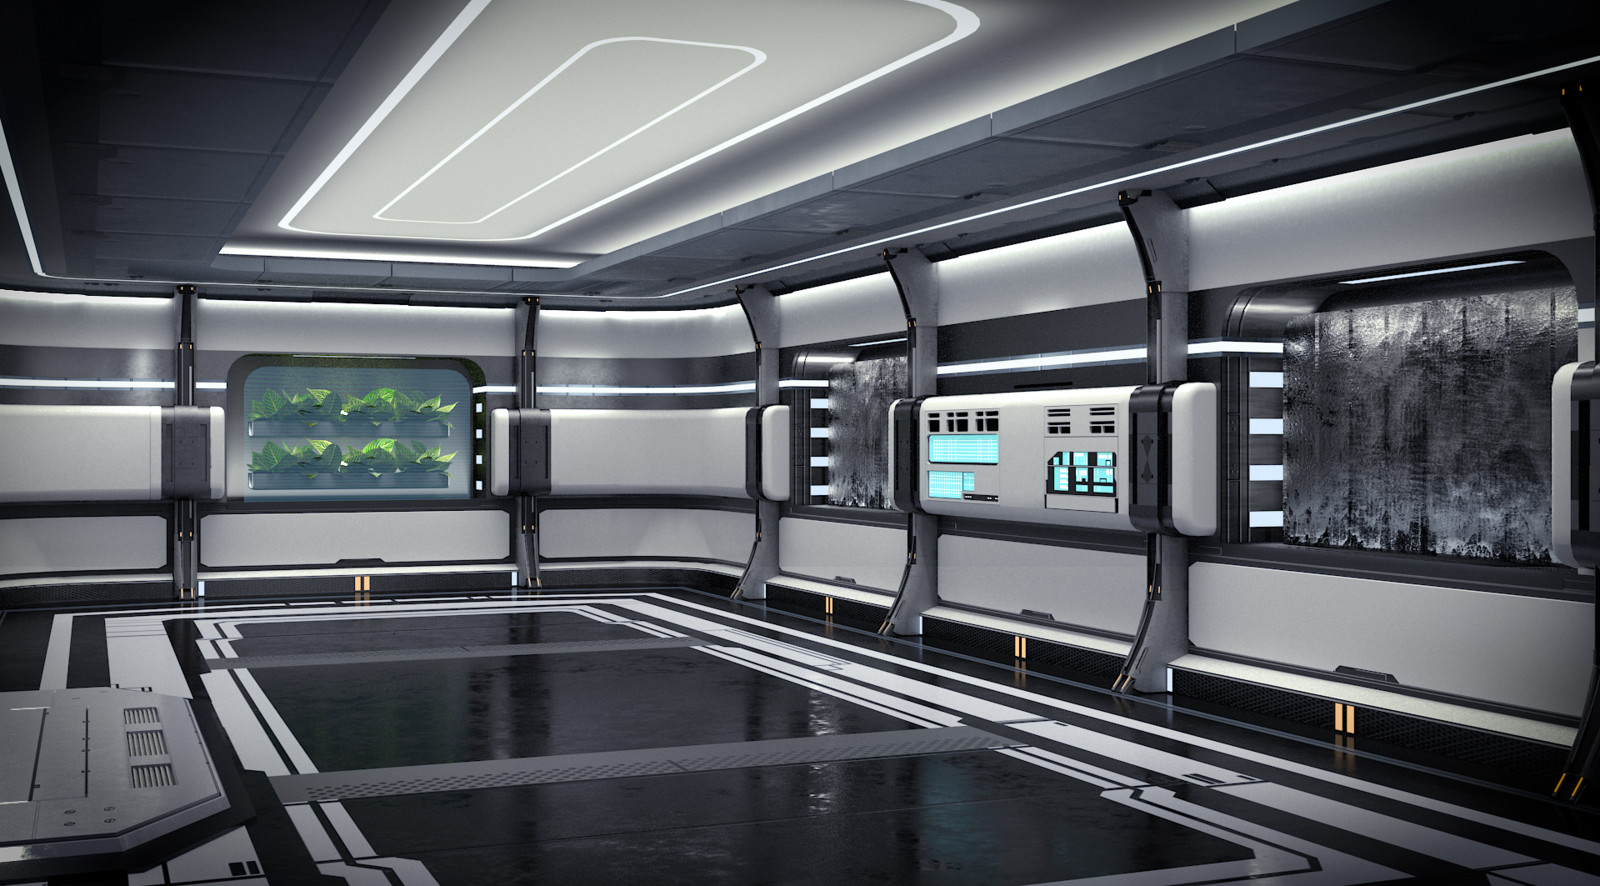 Star Citizen Concept Room